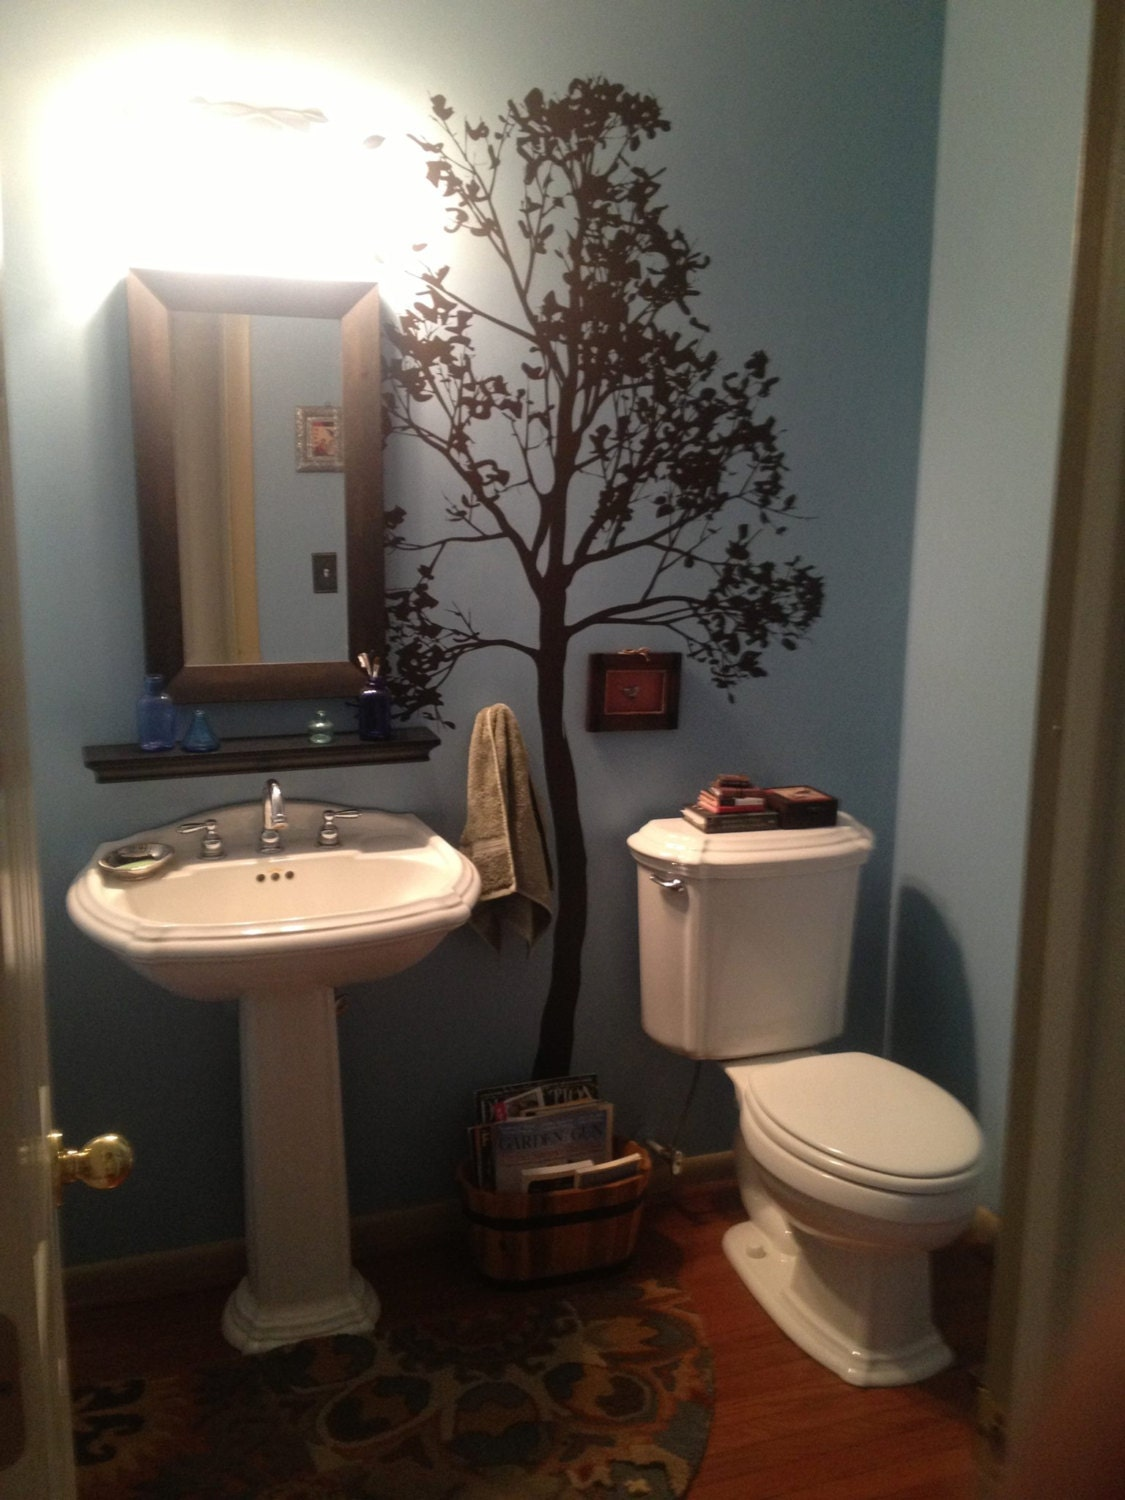 Large wall simple spring tree decal forest decor vinyl sticker for Spring bathroom decor